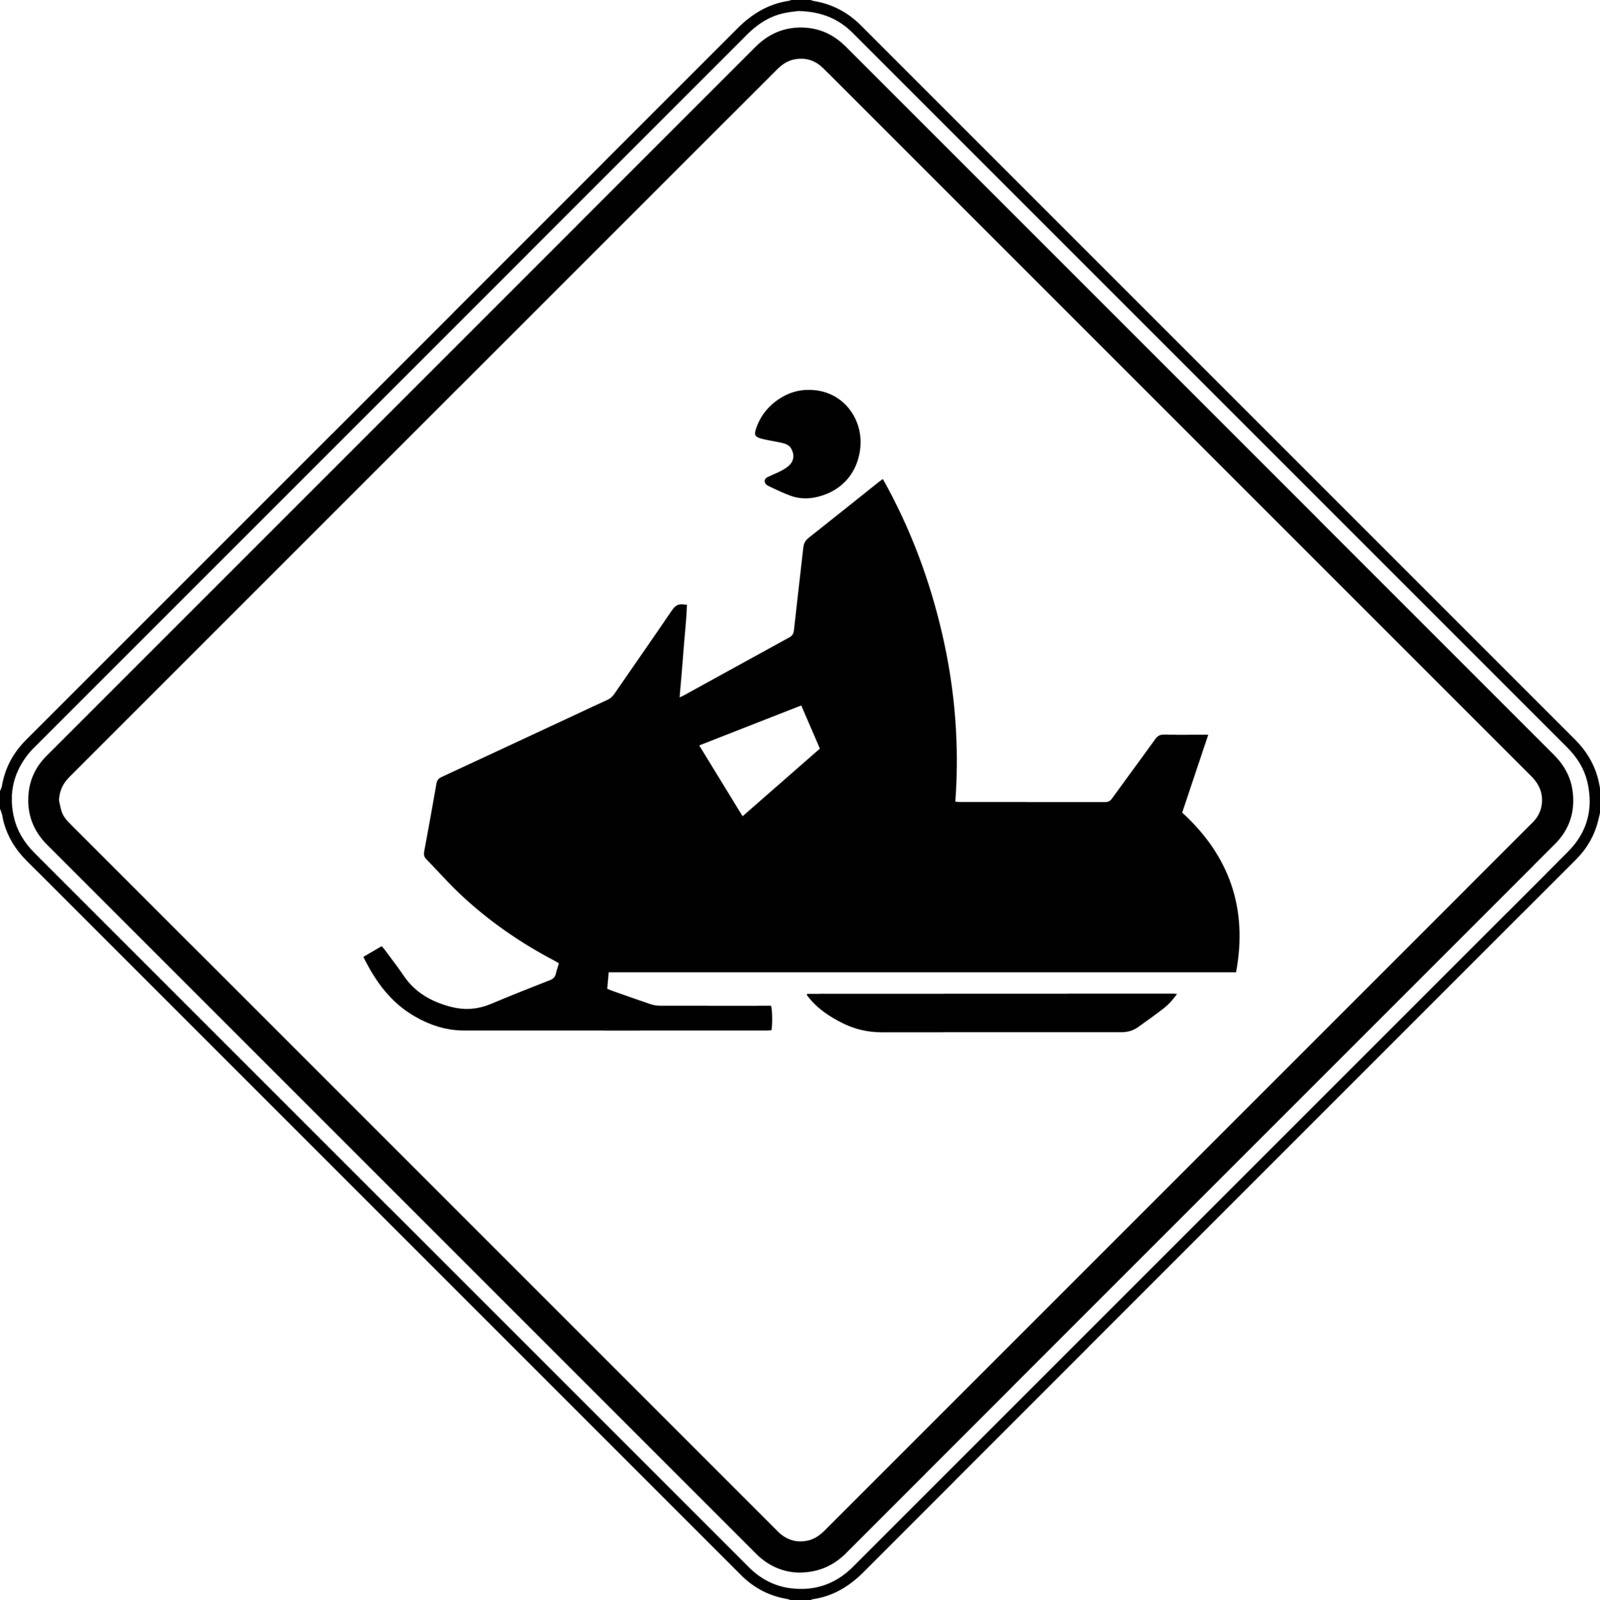 Non vehicle sign showing snow mobile crossing which gives indication to drivers for not commuting through this road, vintage line drawing or engraving illustration.